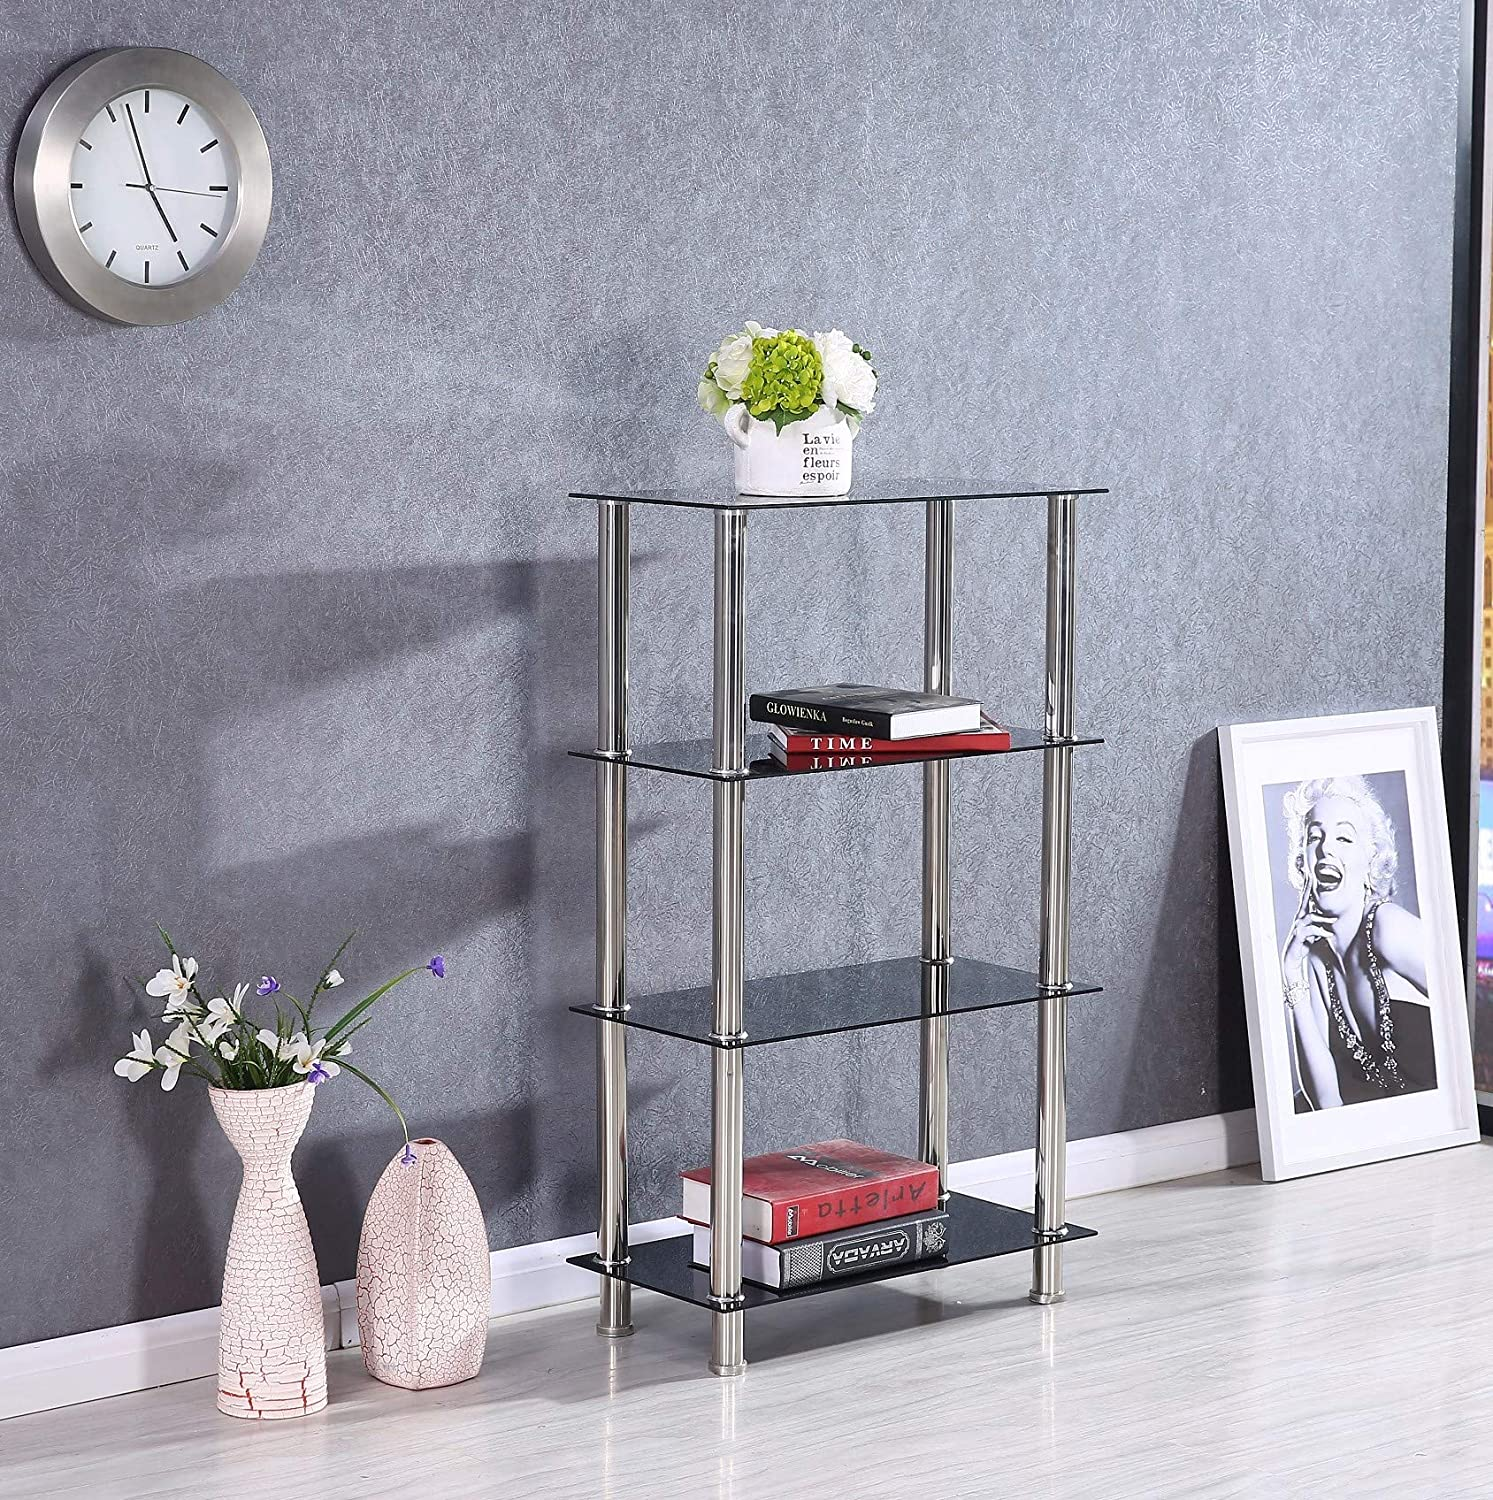 Decorative Shelves Glass 4 Tier Household Floor Storage by Better Home Products